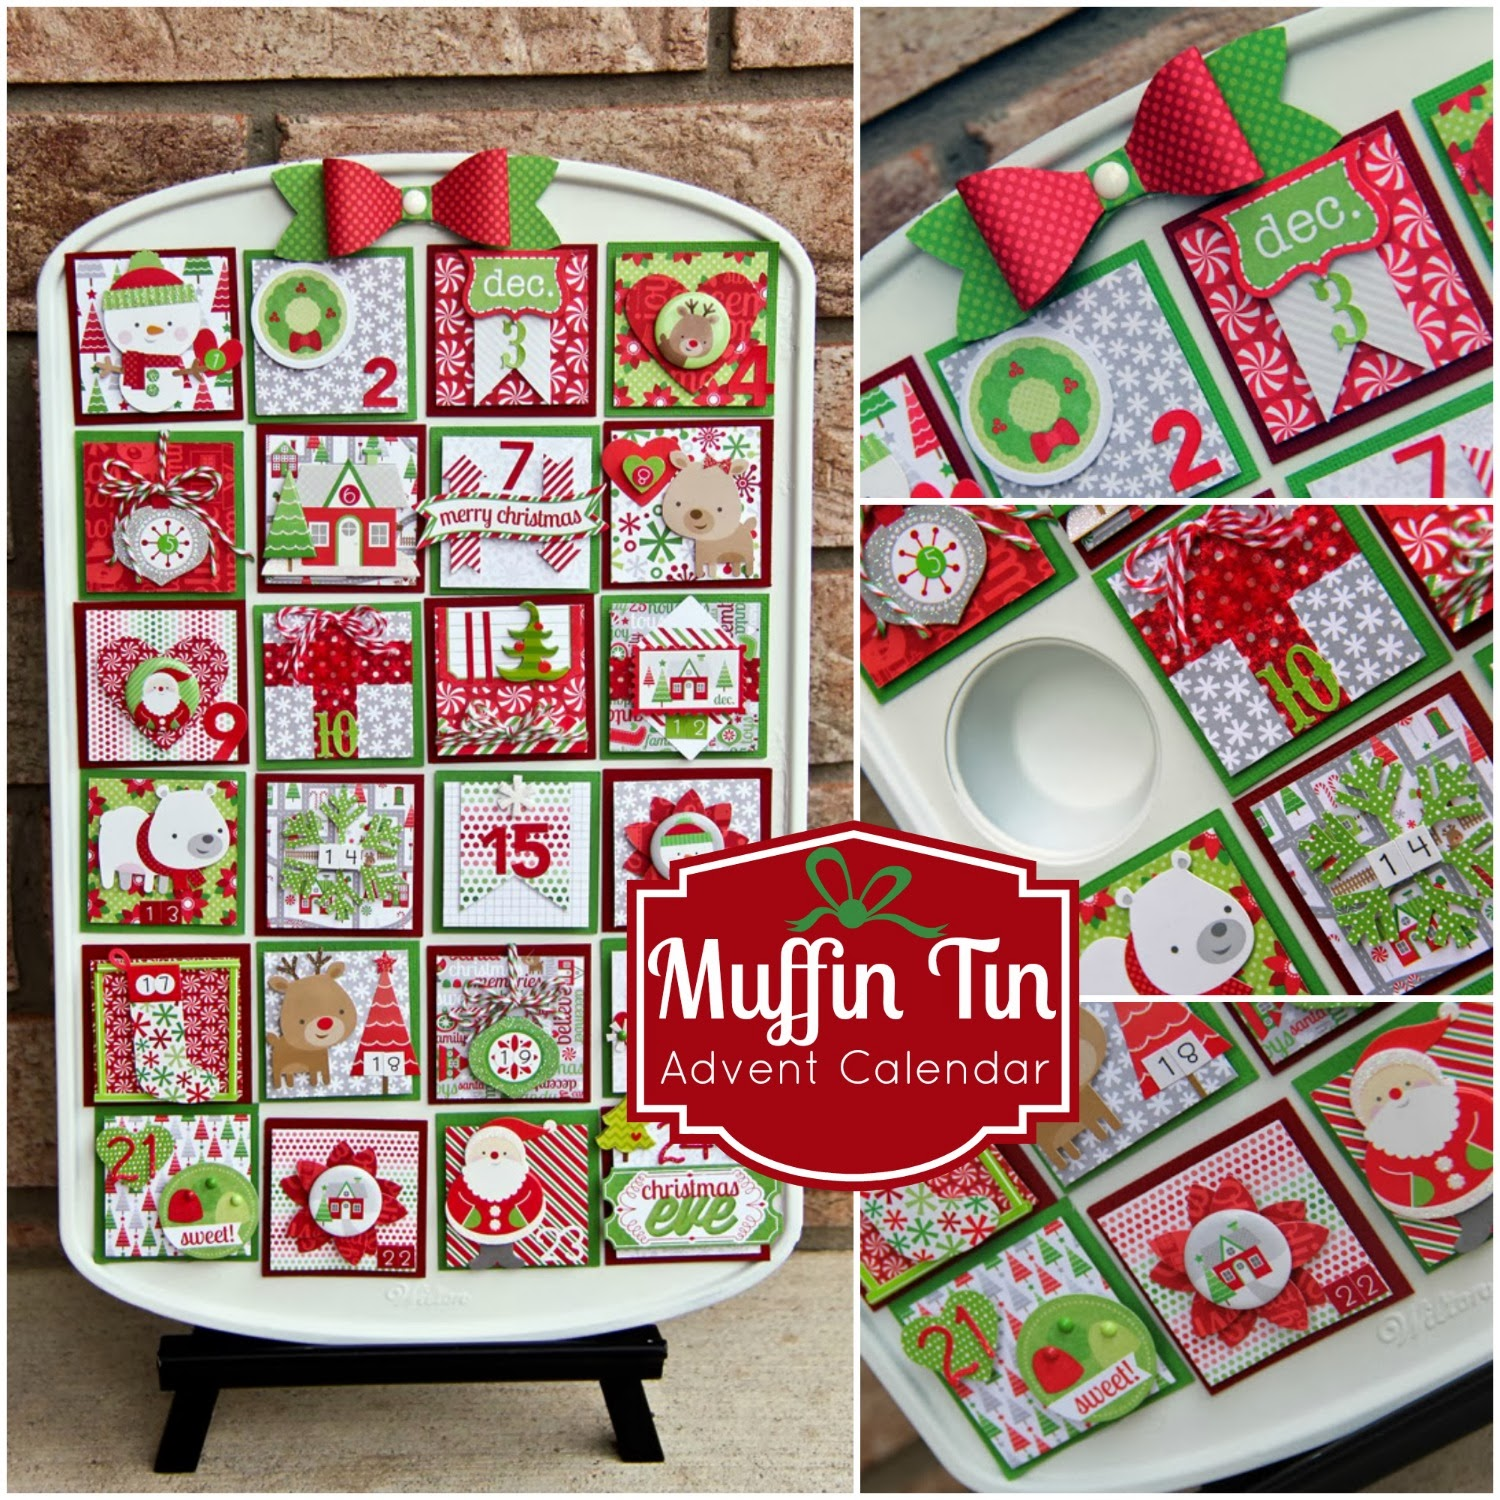 Typography Advent Calendar : Doodlebug design inc muffin tin advent calendar by jodi